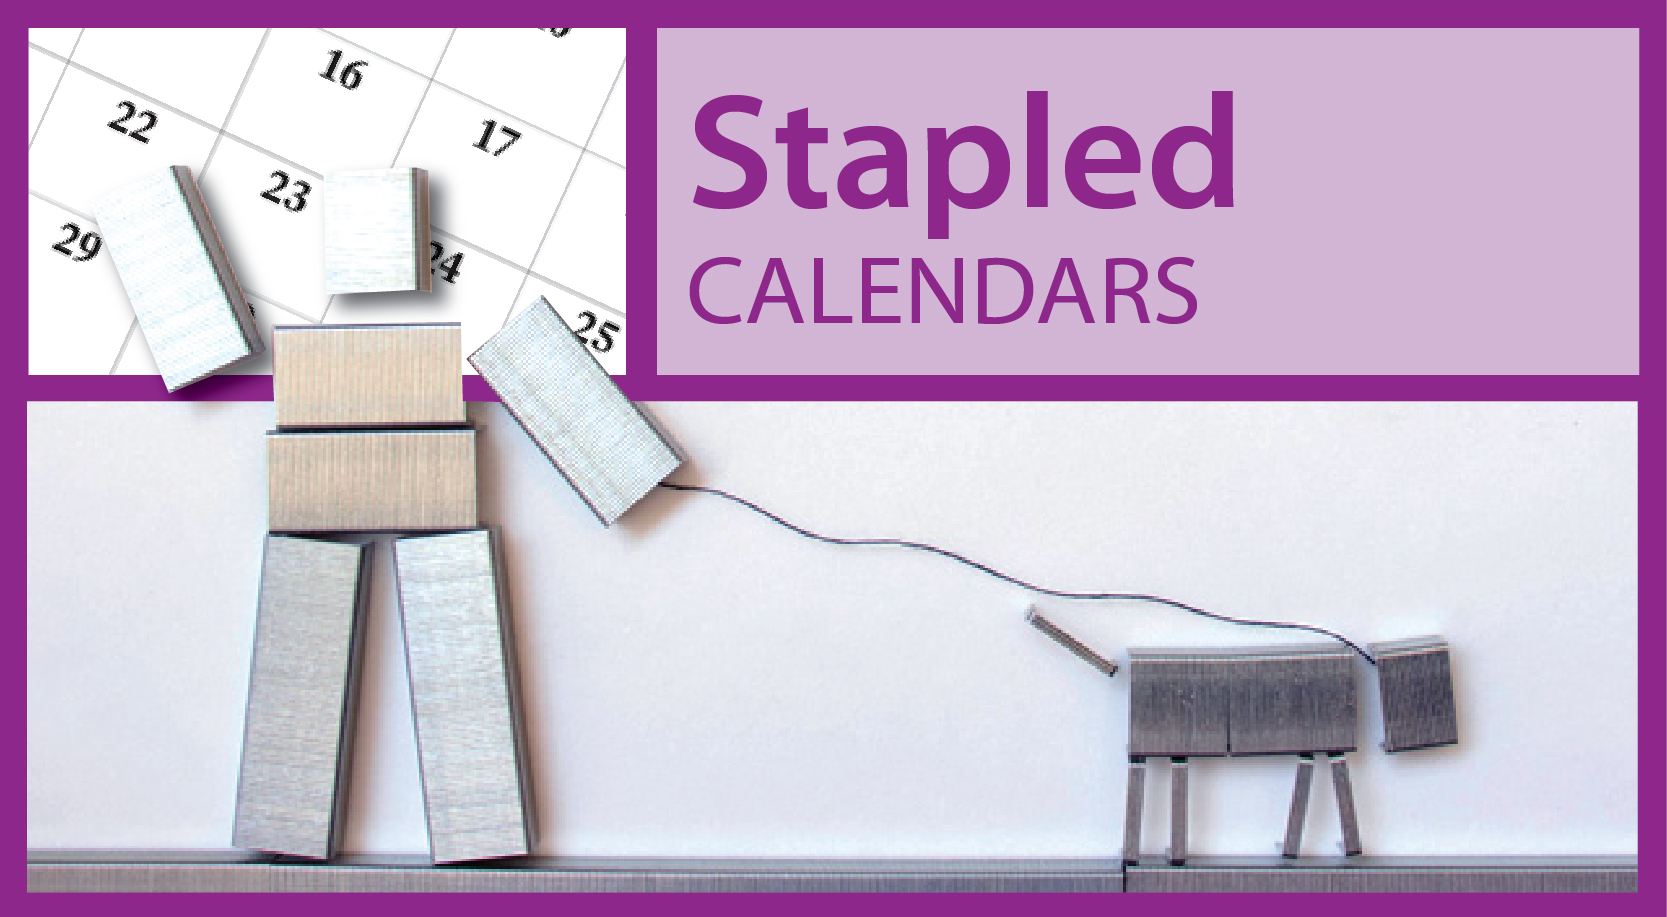 Stapled Wall Calendars | Custom Stapled Appointment Calendars for Business